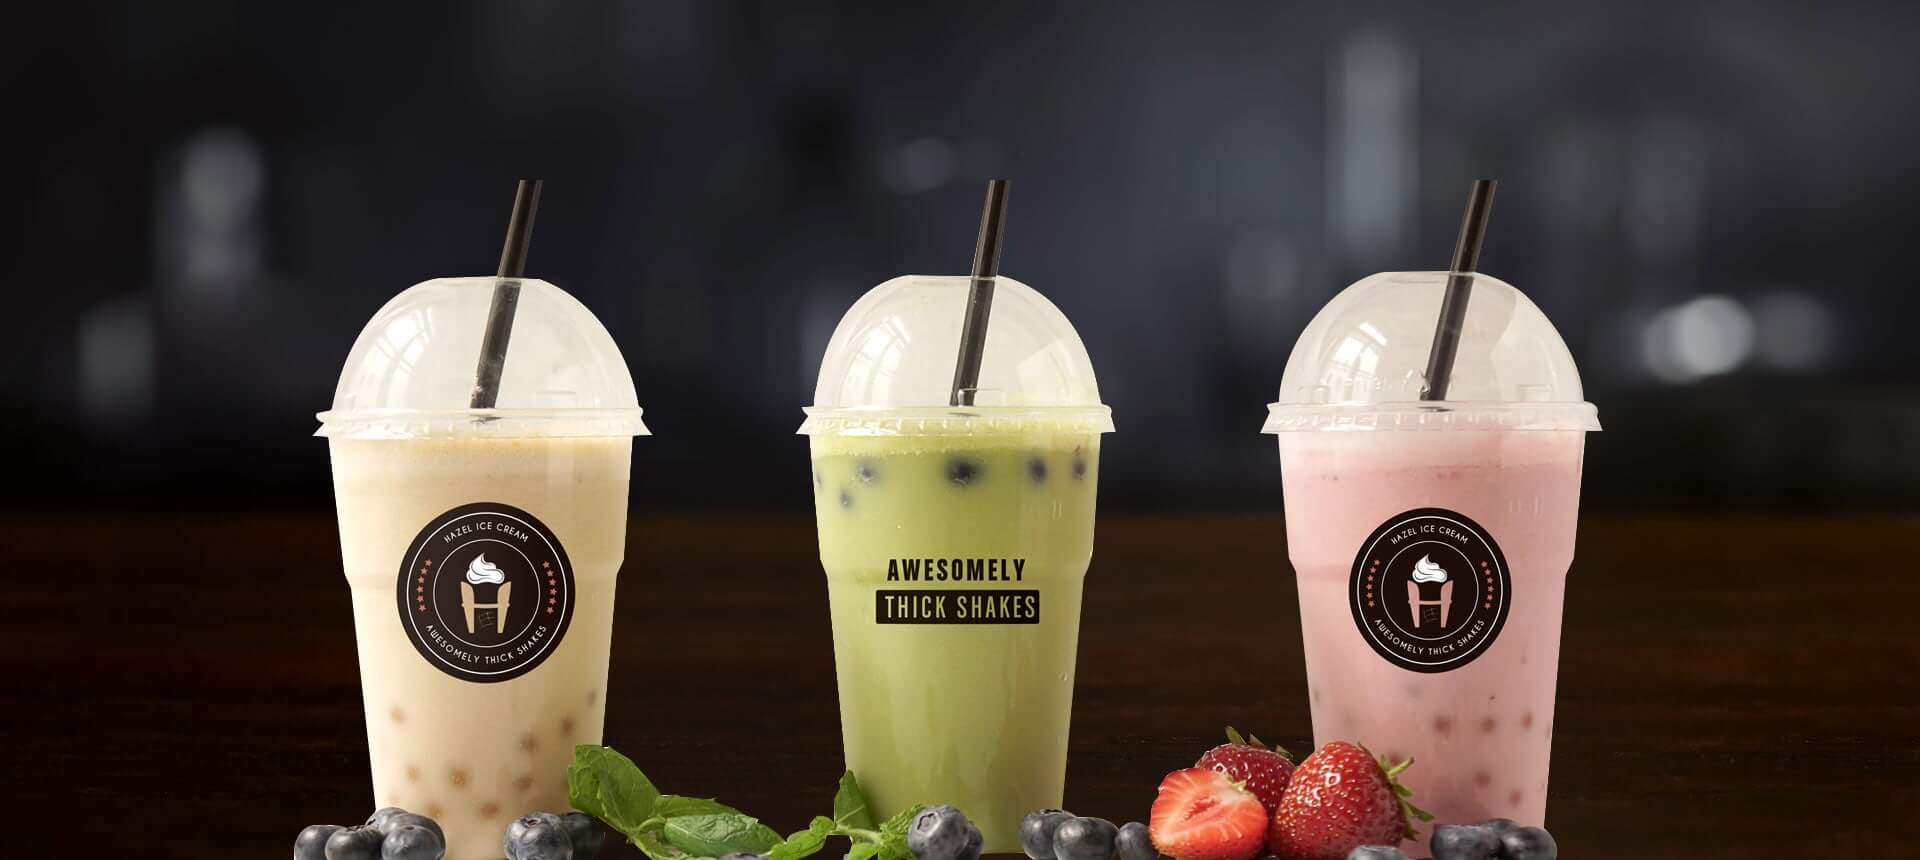 thick-shakes-banner